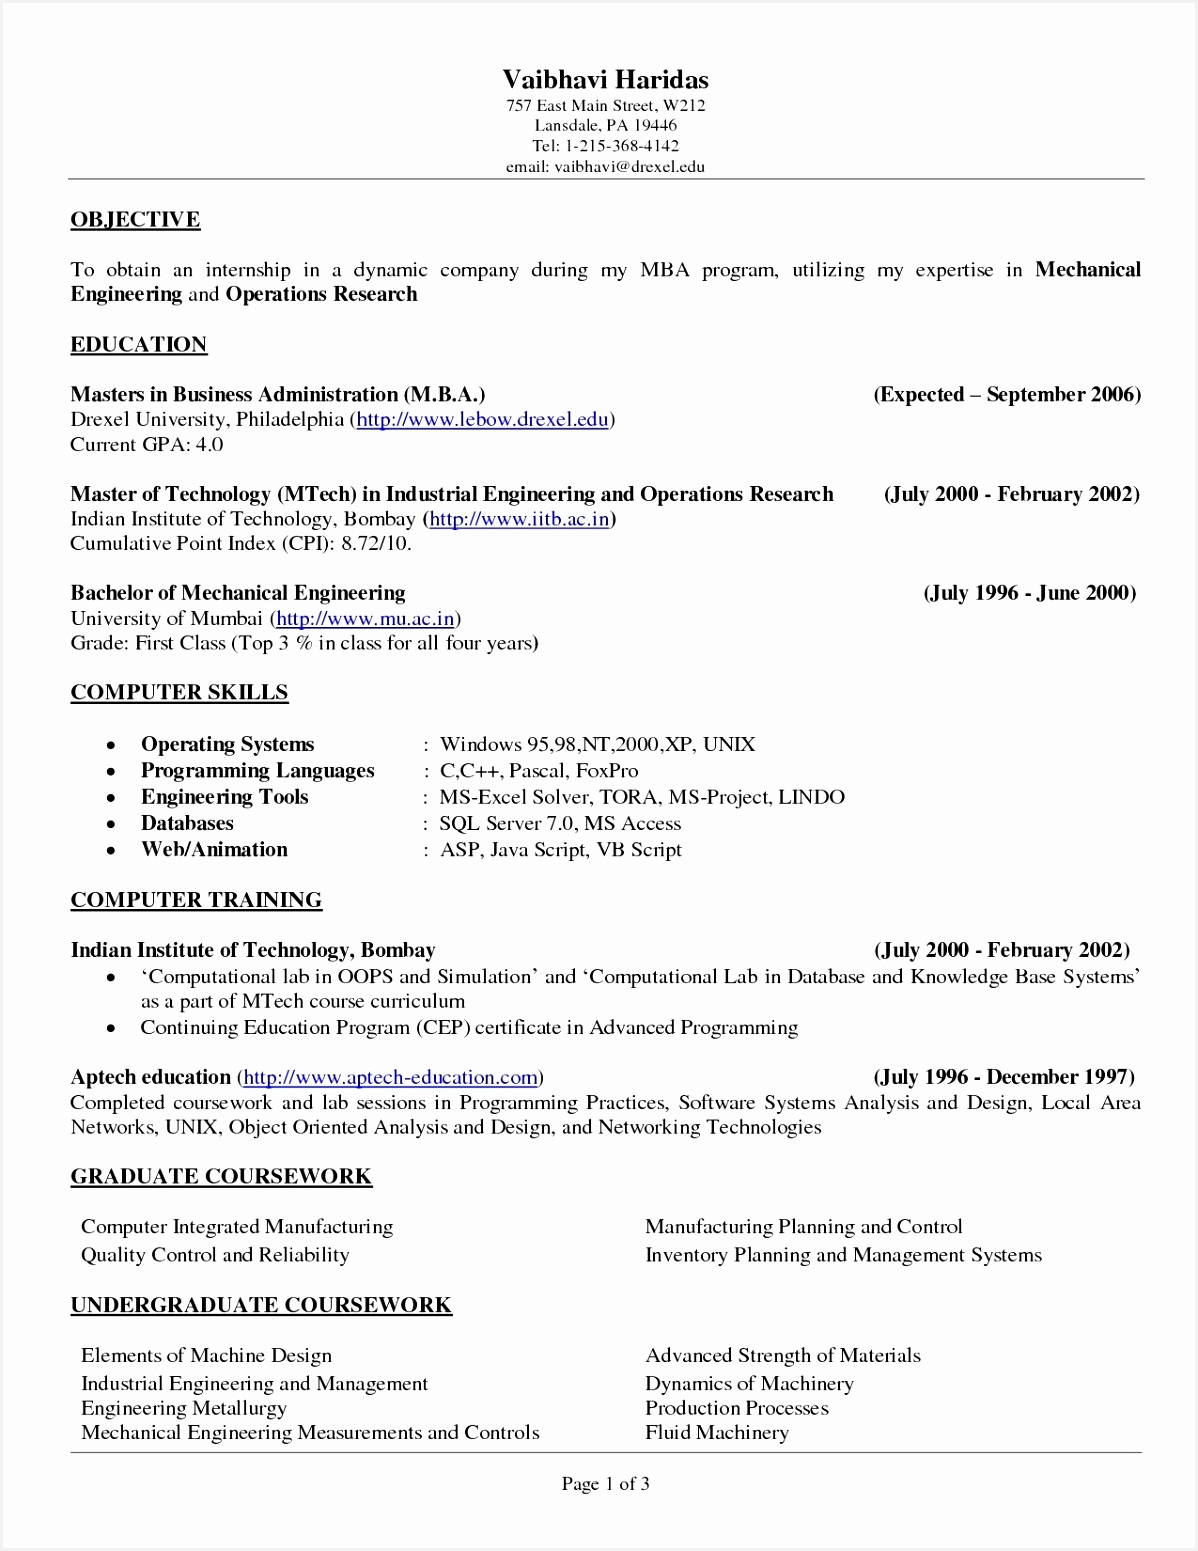 College Resume Sample Unique Resume Objective Examples for Any Job Unique Best Sample College 155111981yBmq